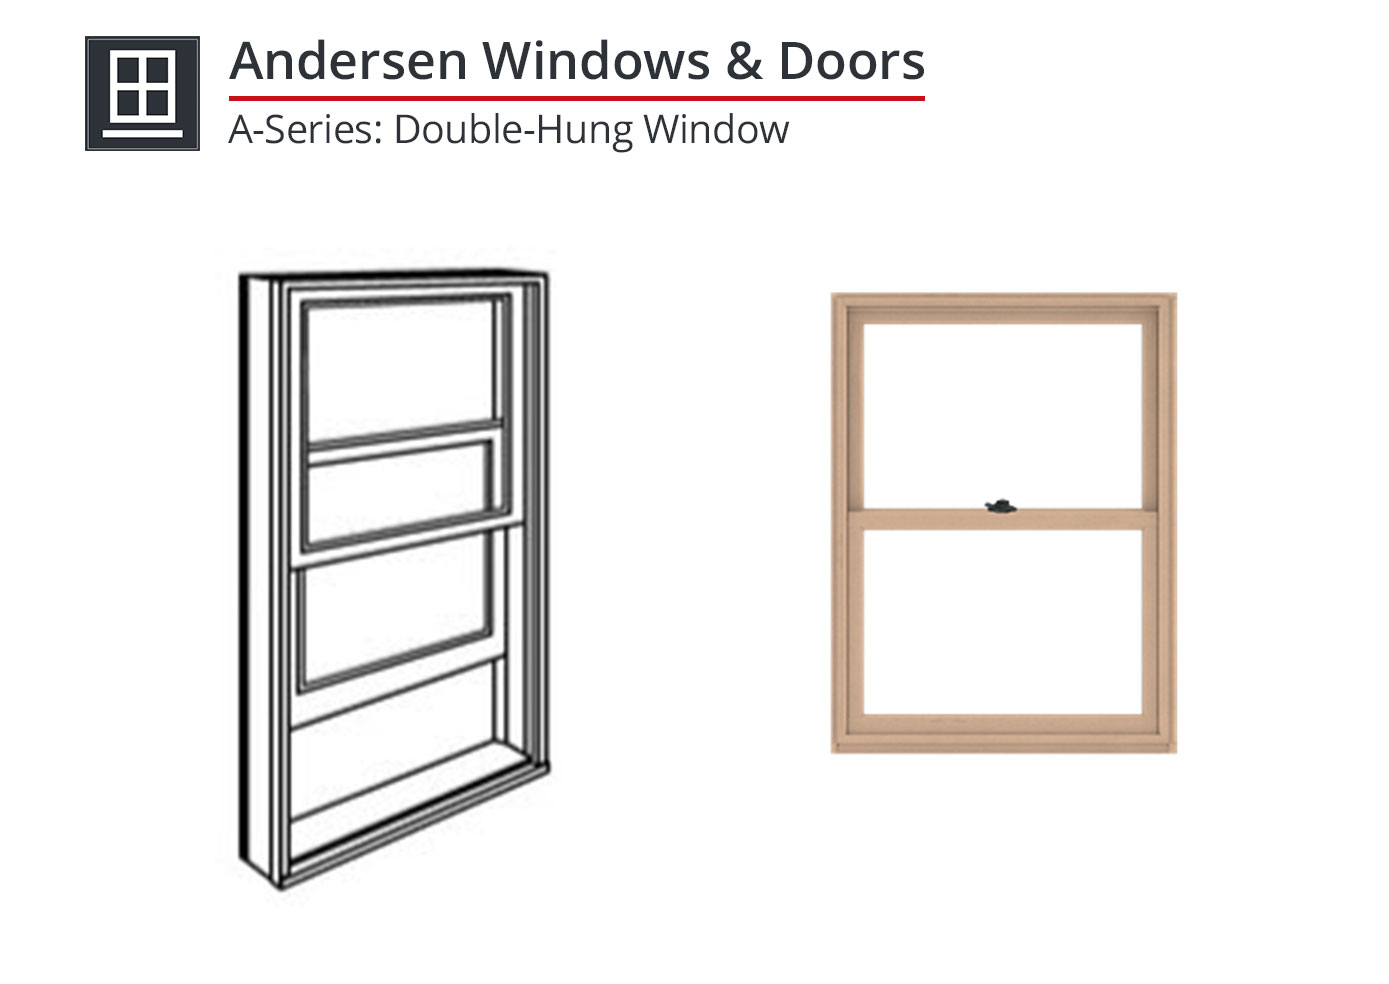 910-025 A-Series: Double-Hung Window